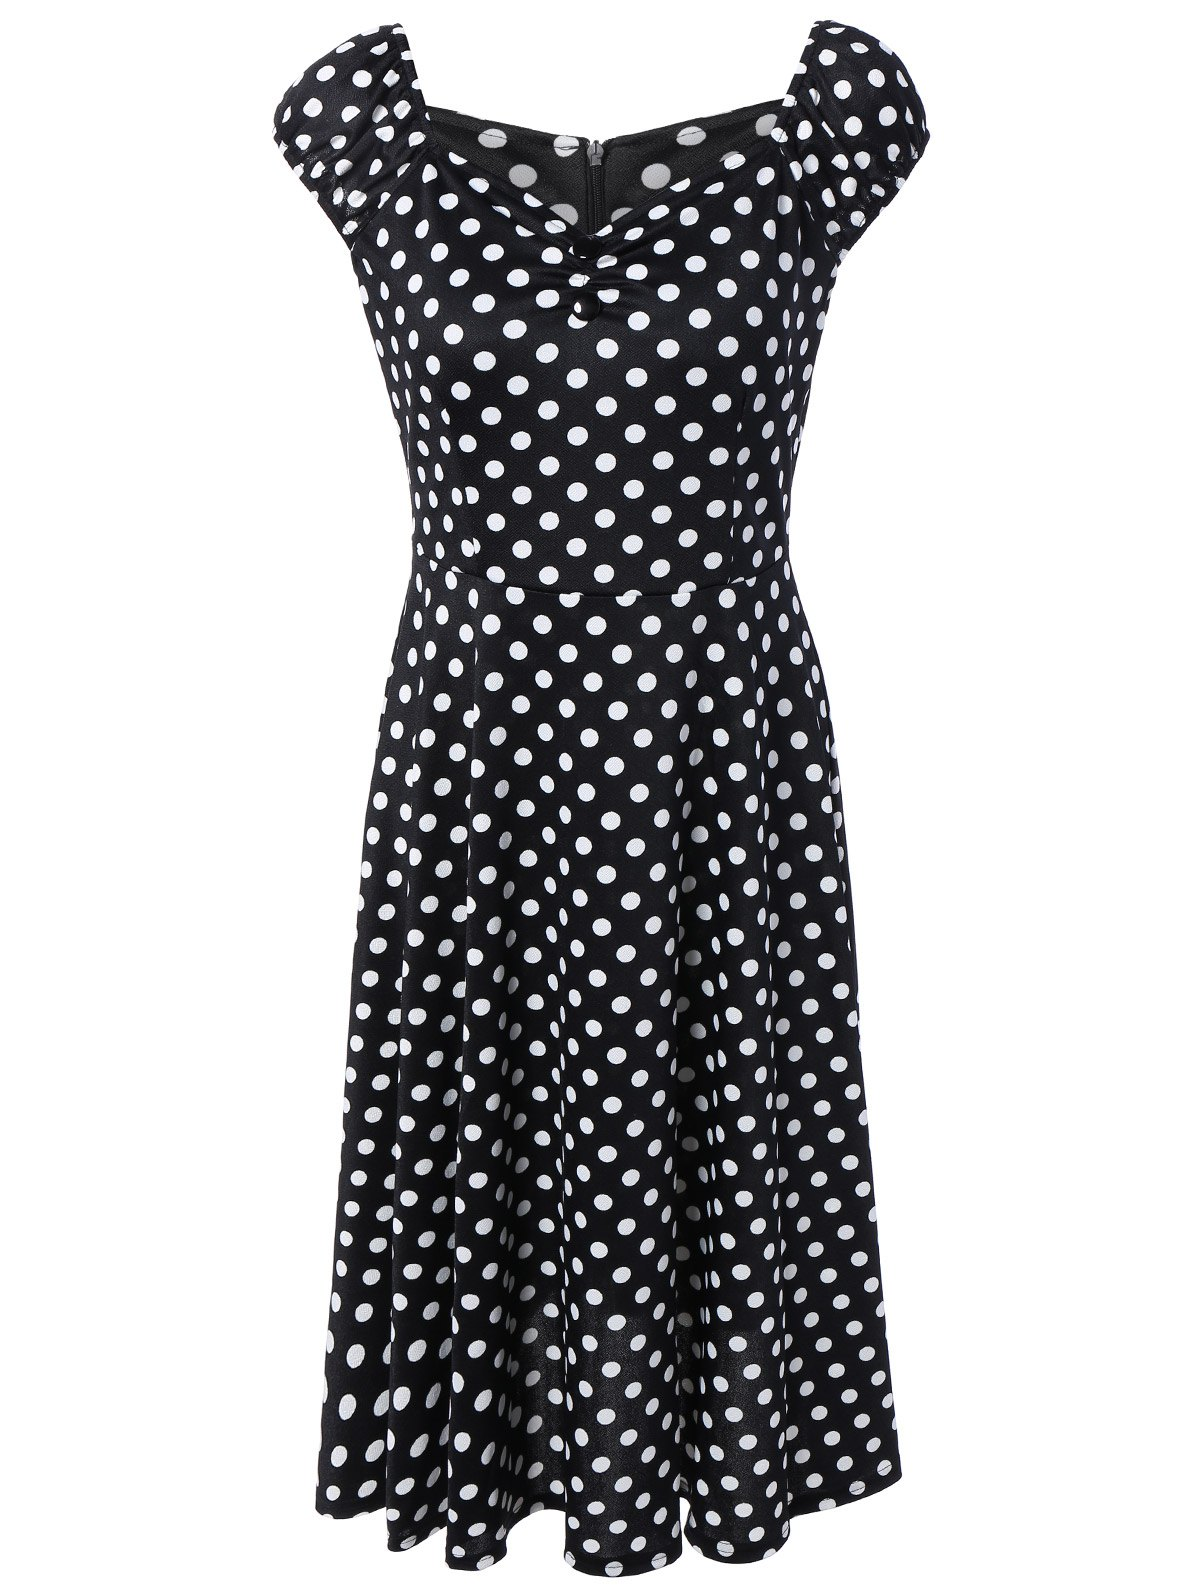 Buttoned Polka Dot Swing Dress - BLACK 2XL